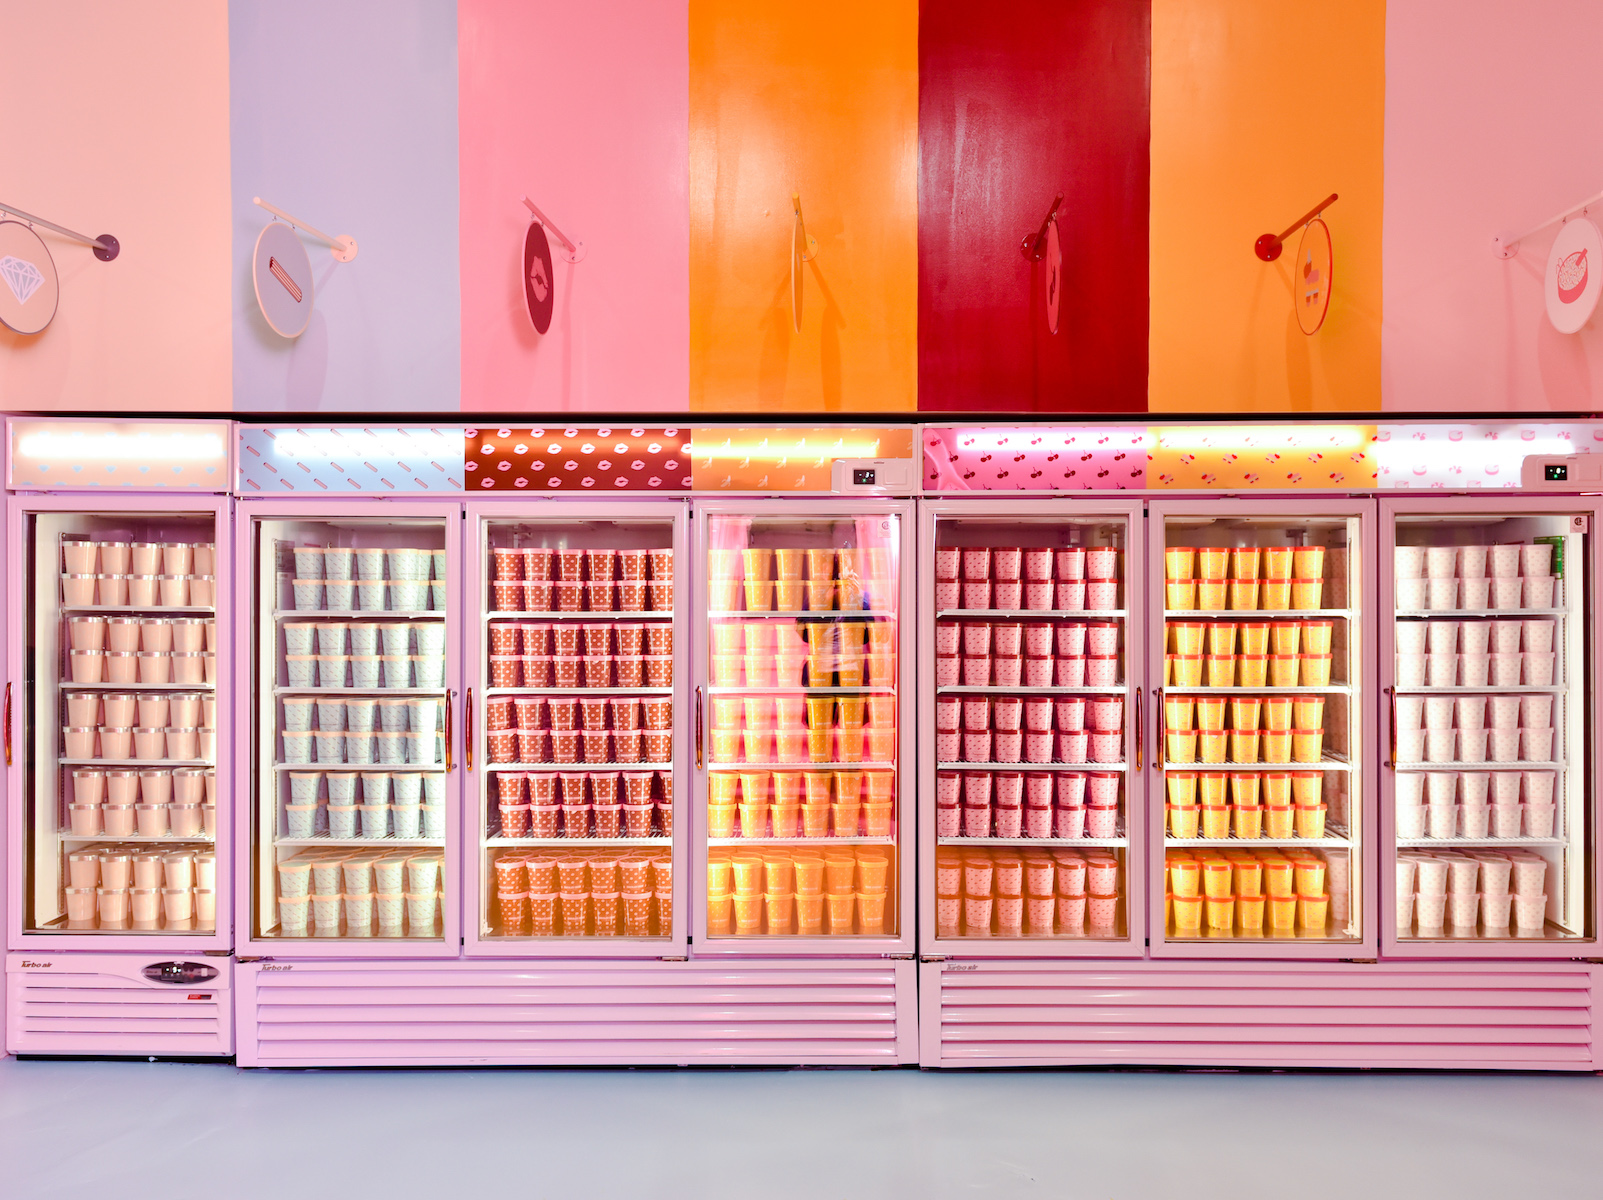 Museum of Ice Cream's Pint Shop: 5 Reasons to Go (Even If You Already Dipped in the Sprinkle Pool)